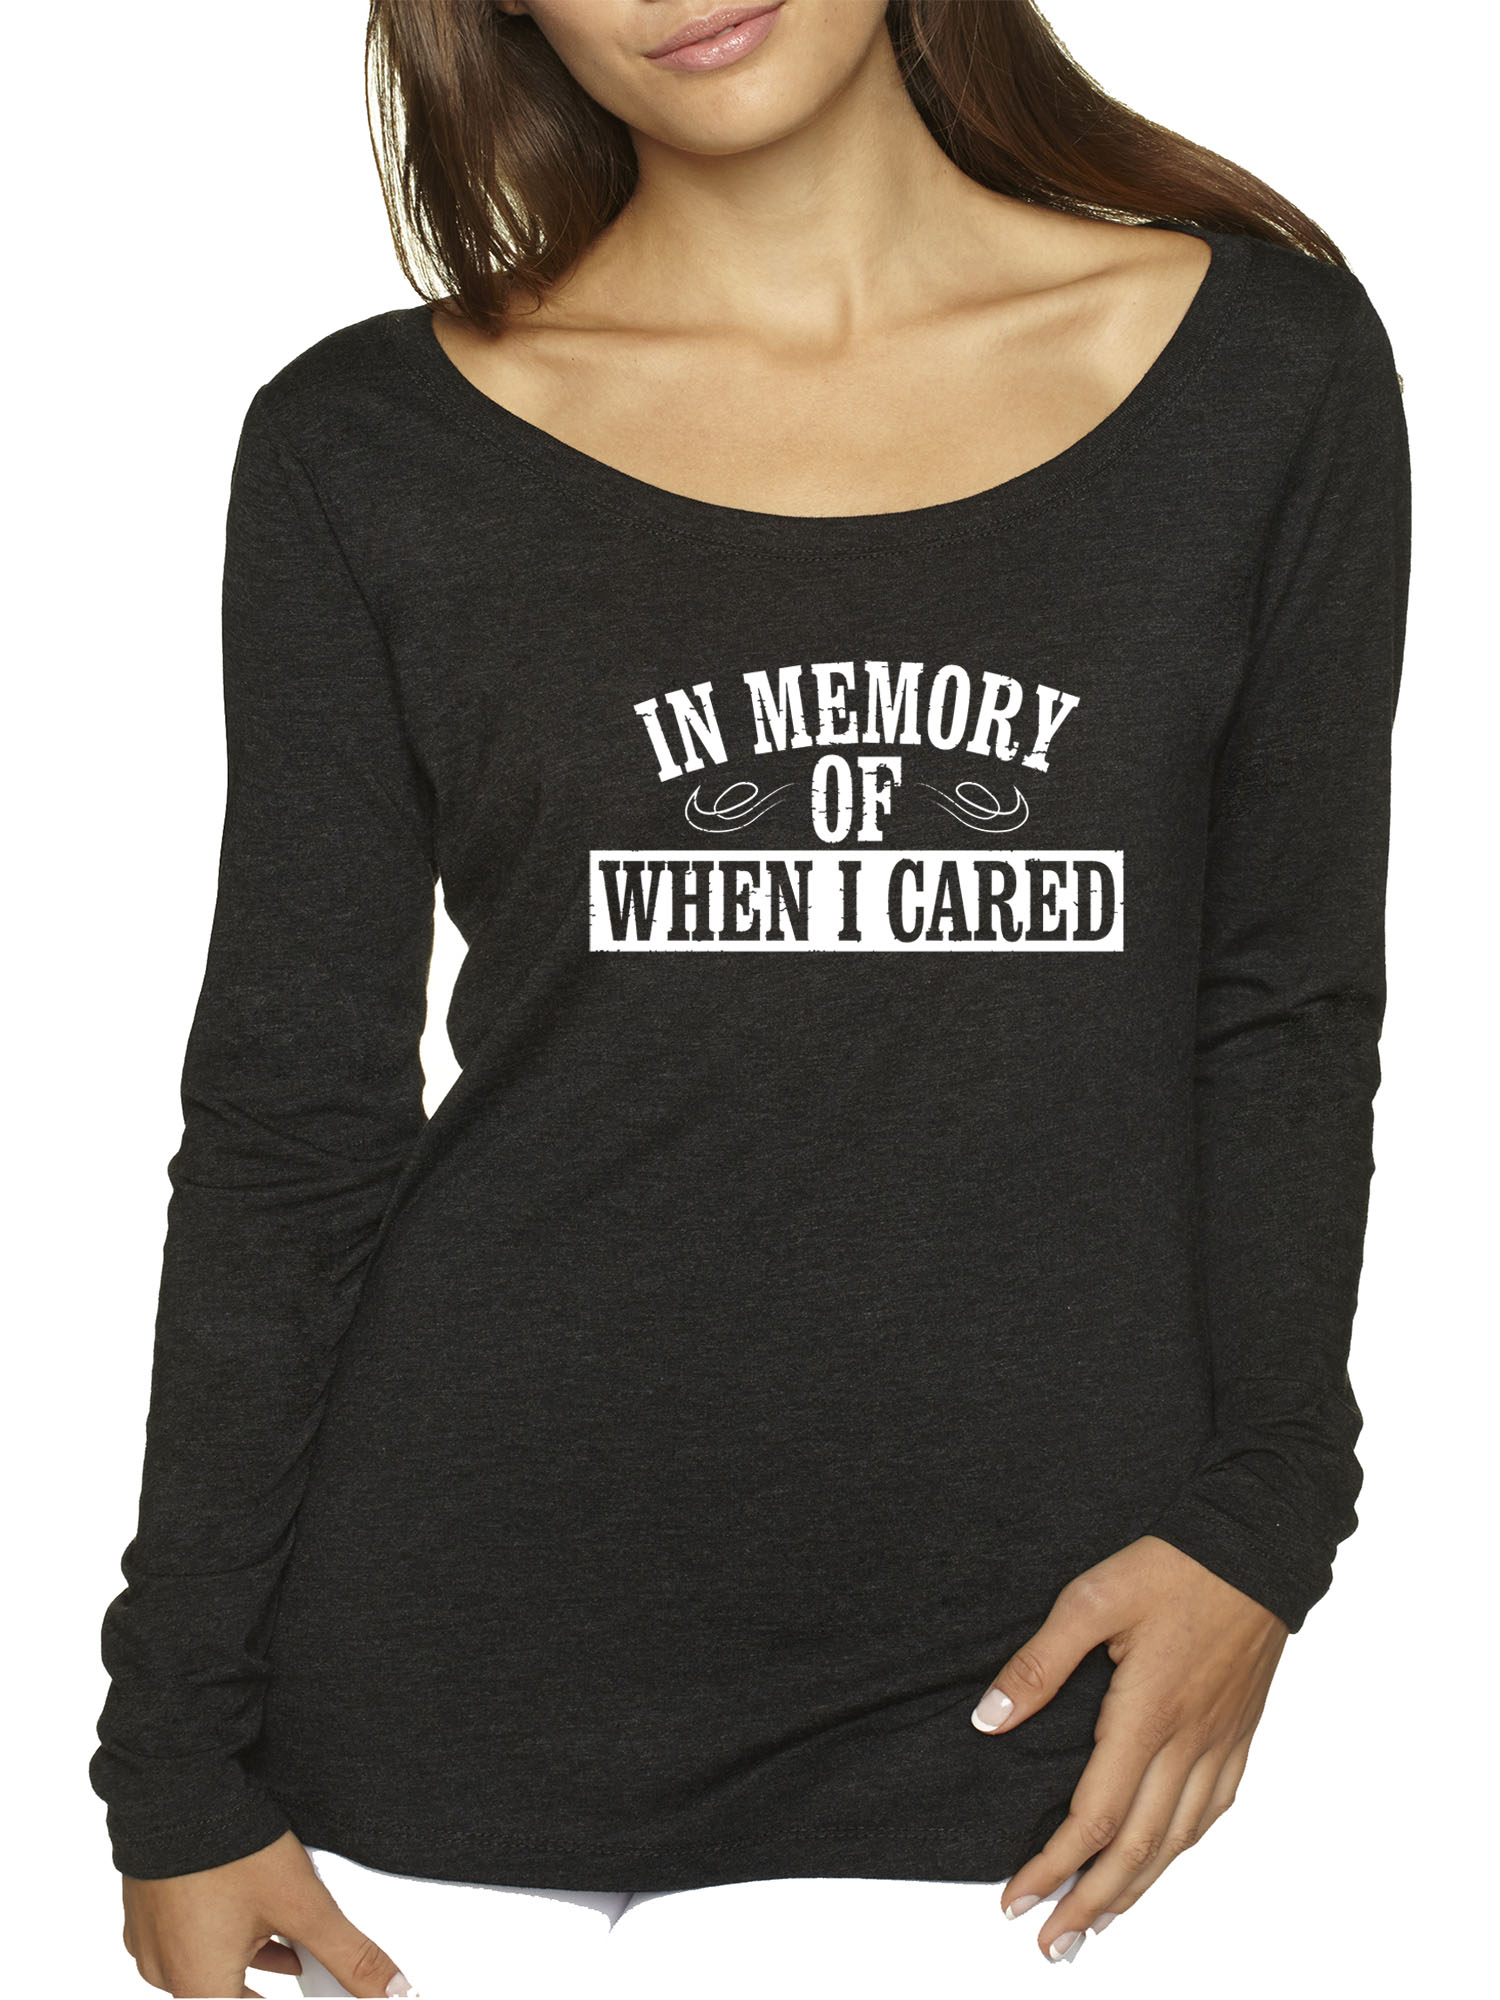 c19103909 New Way 907 - Women's Long Sleeve T-Shirt In Memory of When I Cared Sarcasm  Funny Humor Small Black